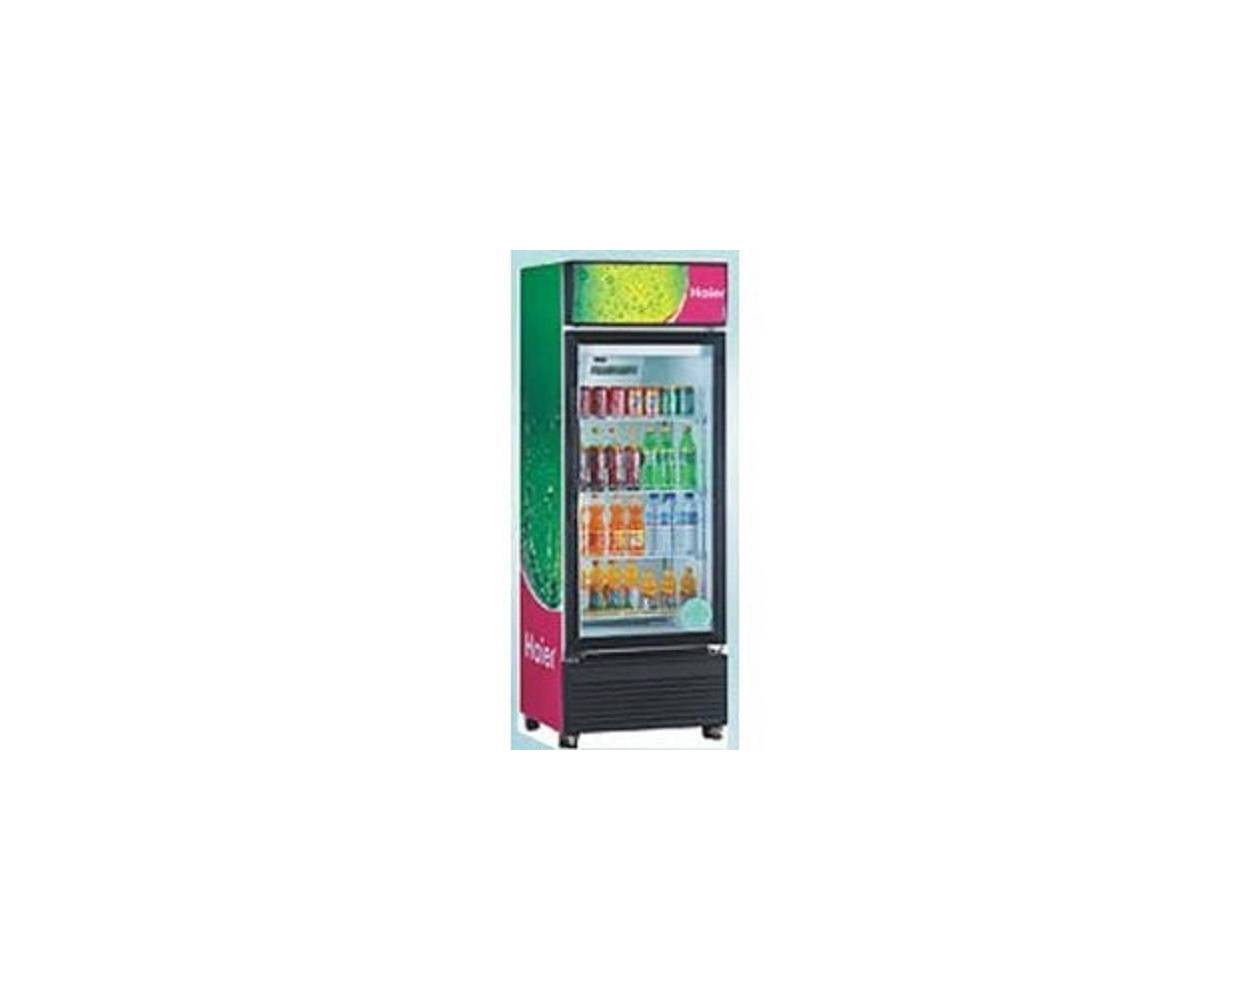 HAIER THERMOCOOL BOTTLE COOLERS SC-340